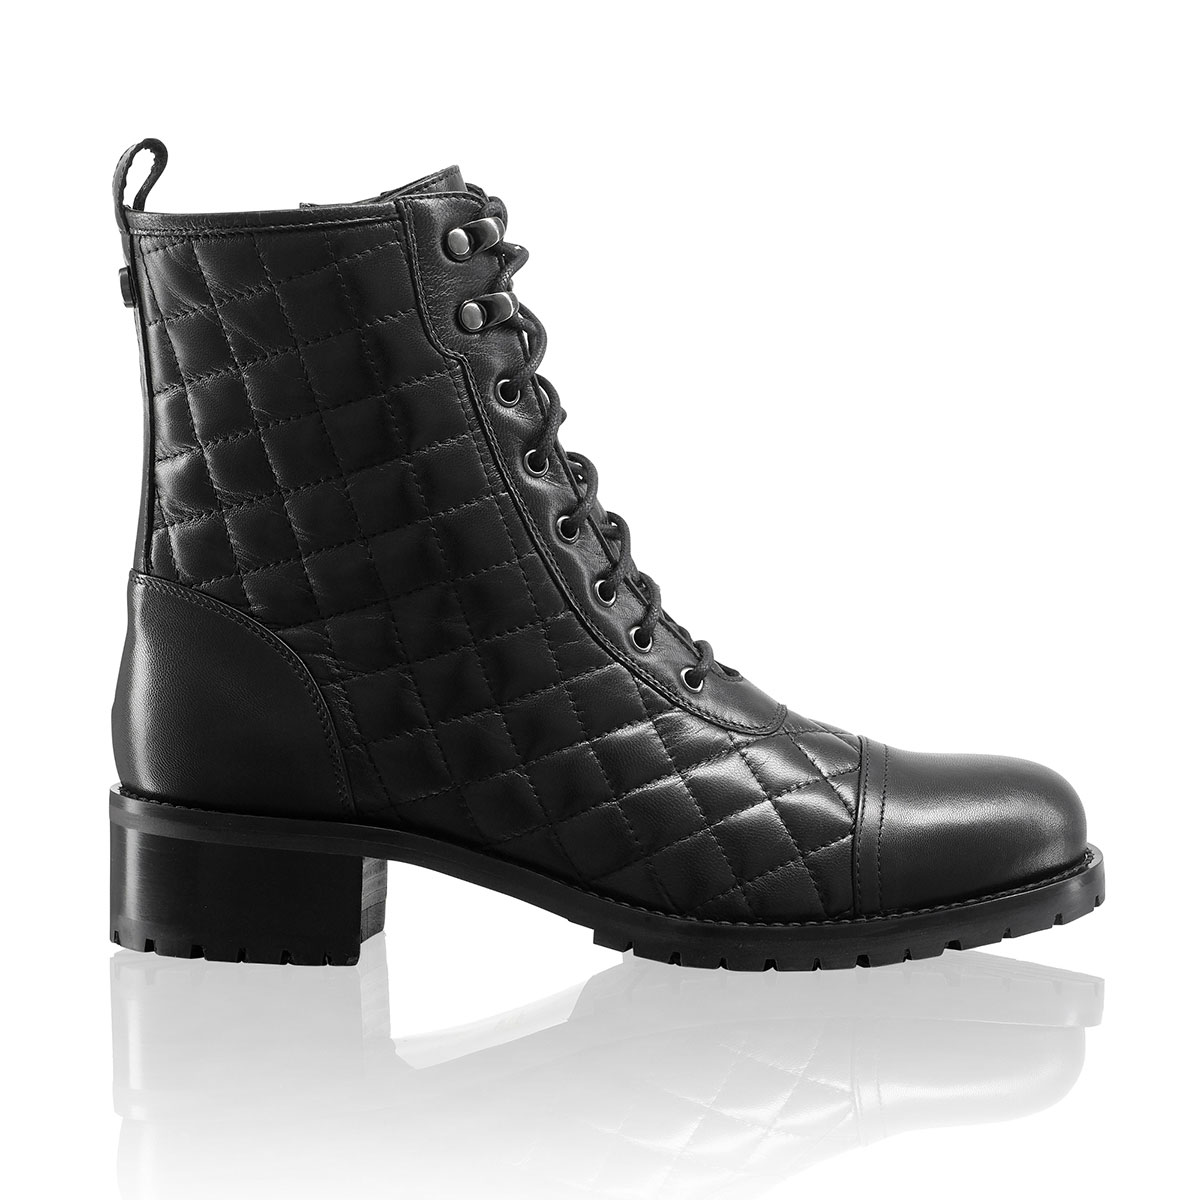 Russell And Bromley TOUGHSTUFF Quilt Biker Boot